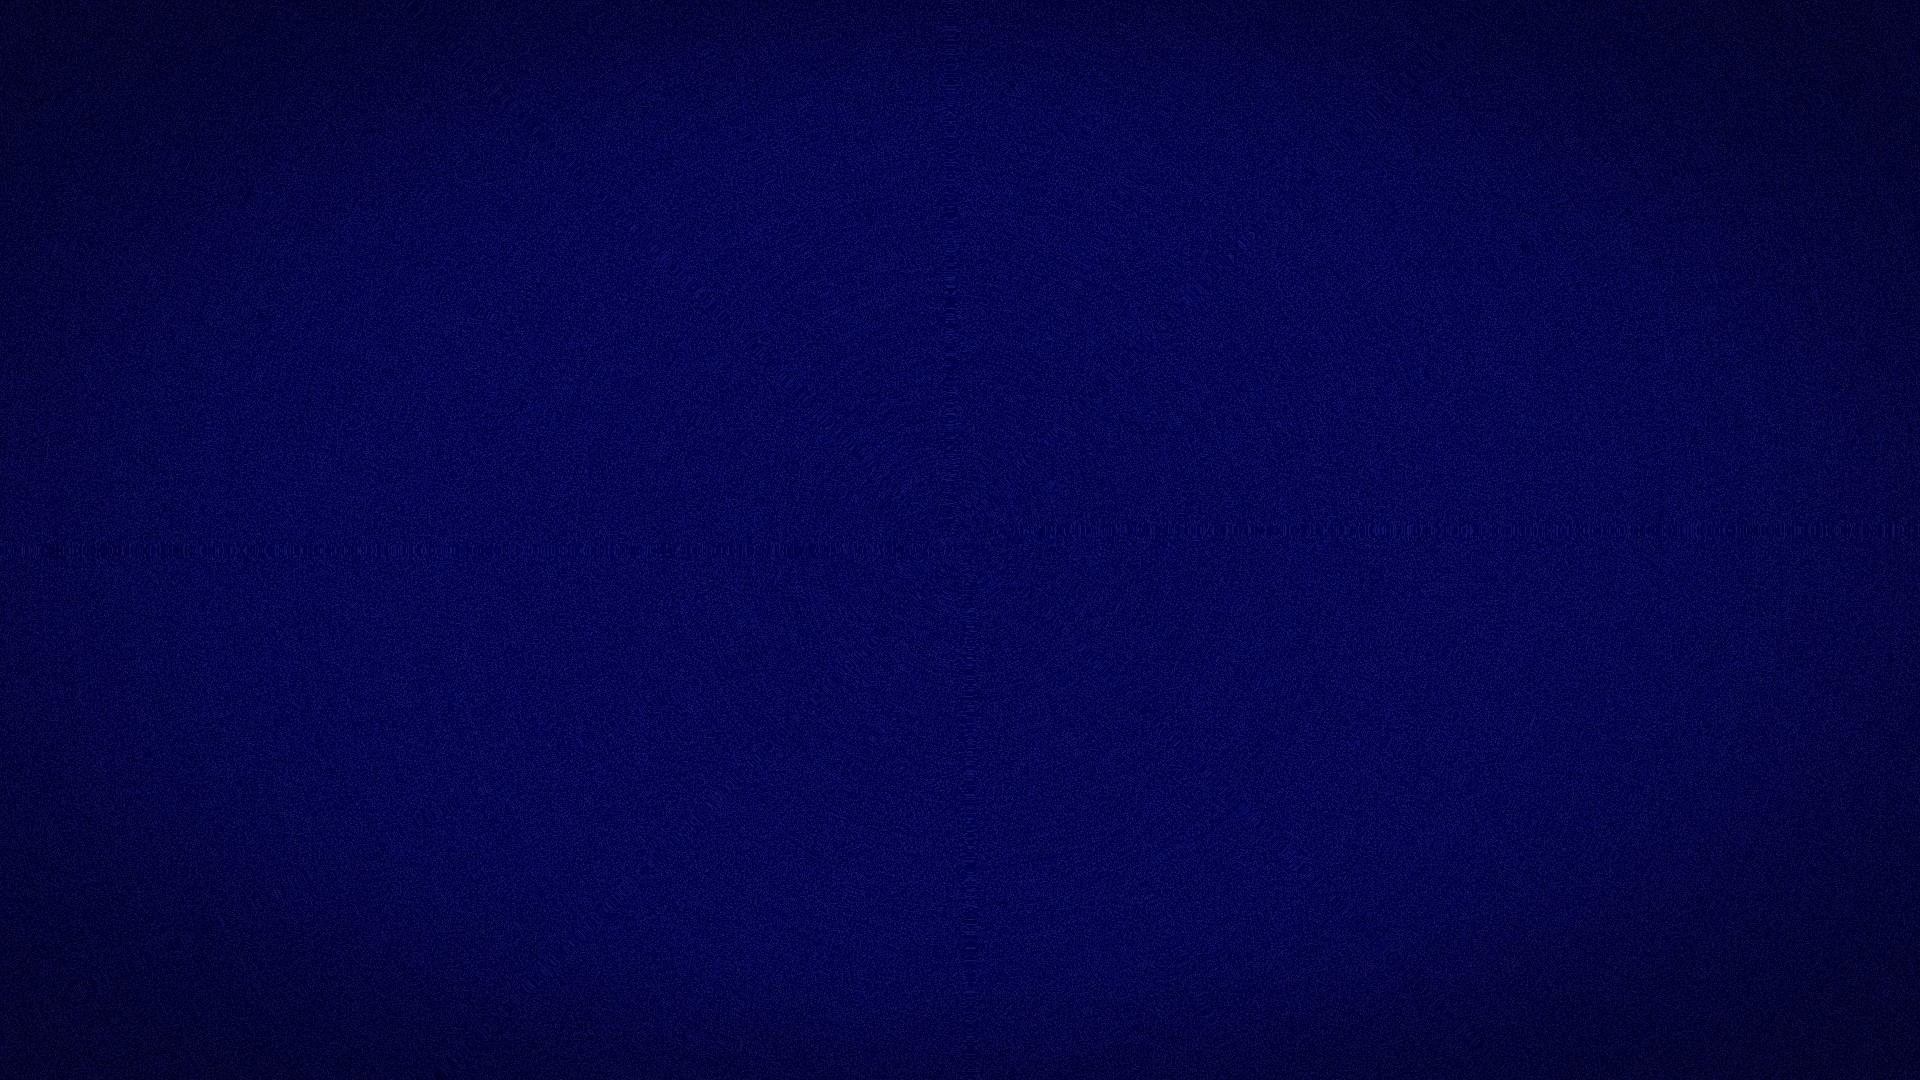 Solid-blue-background